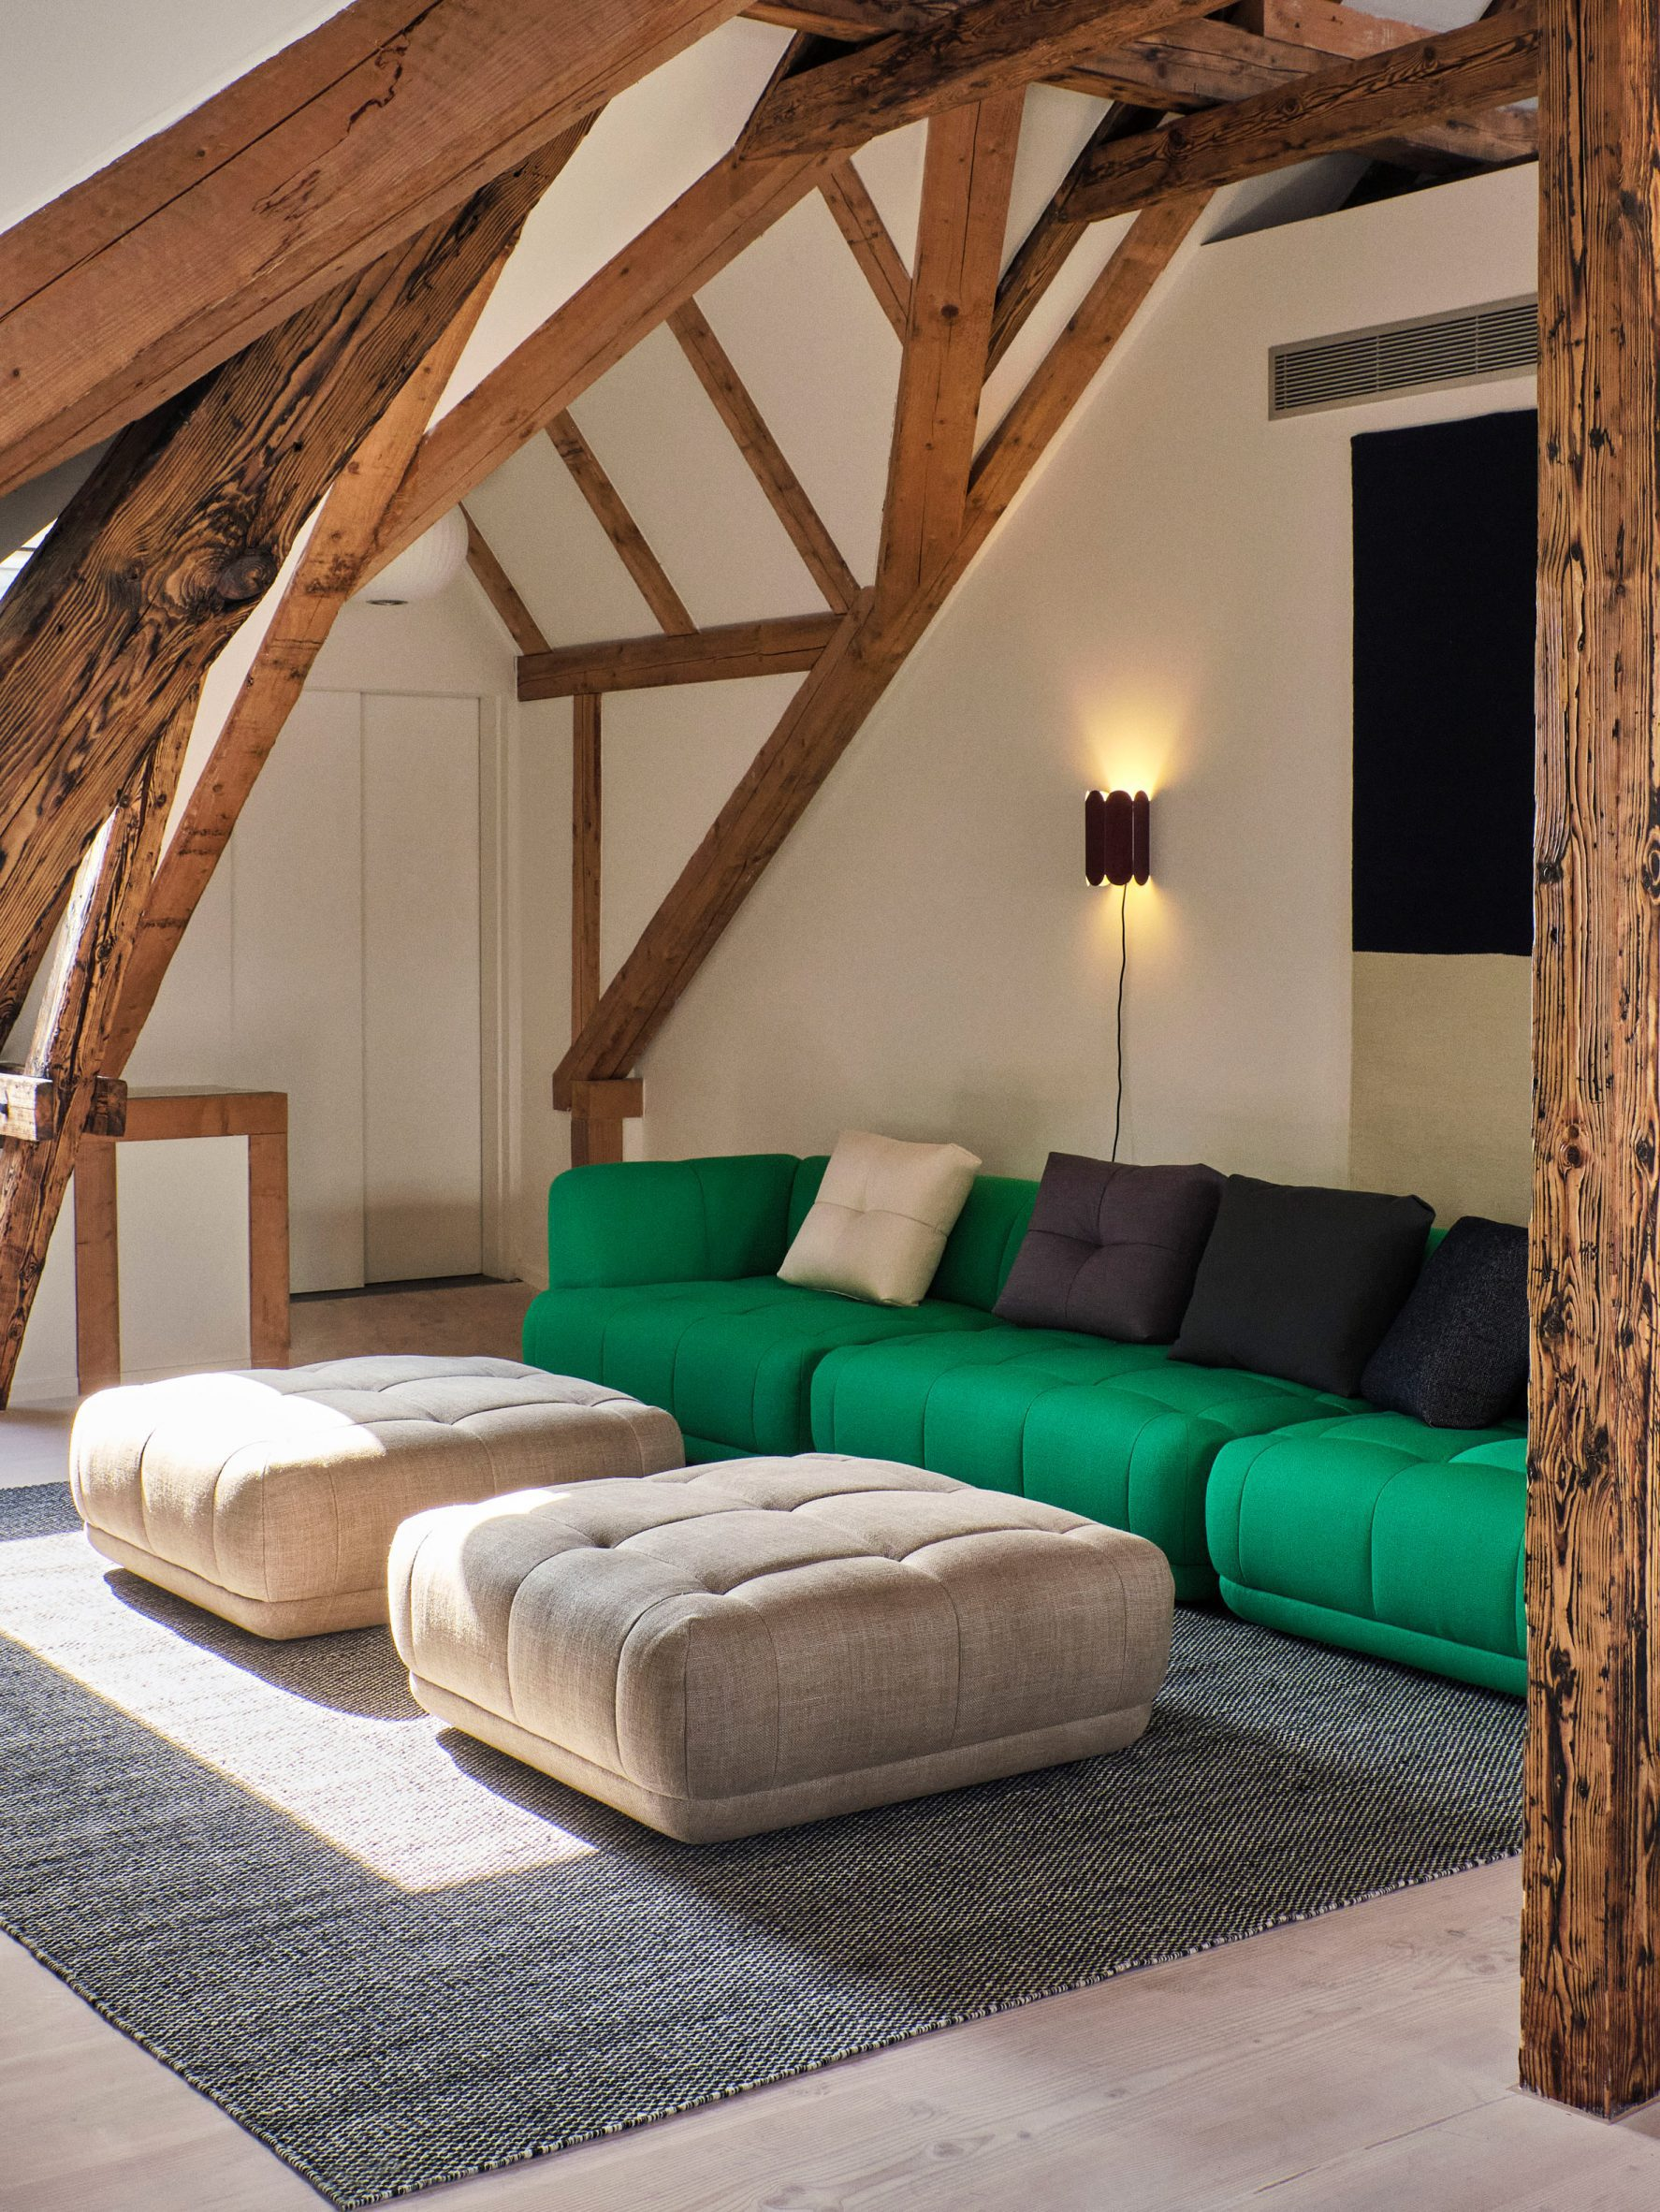 A rest space in Hay House